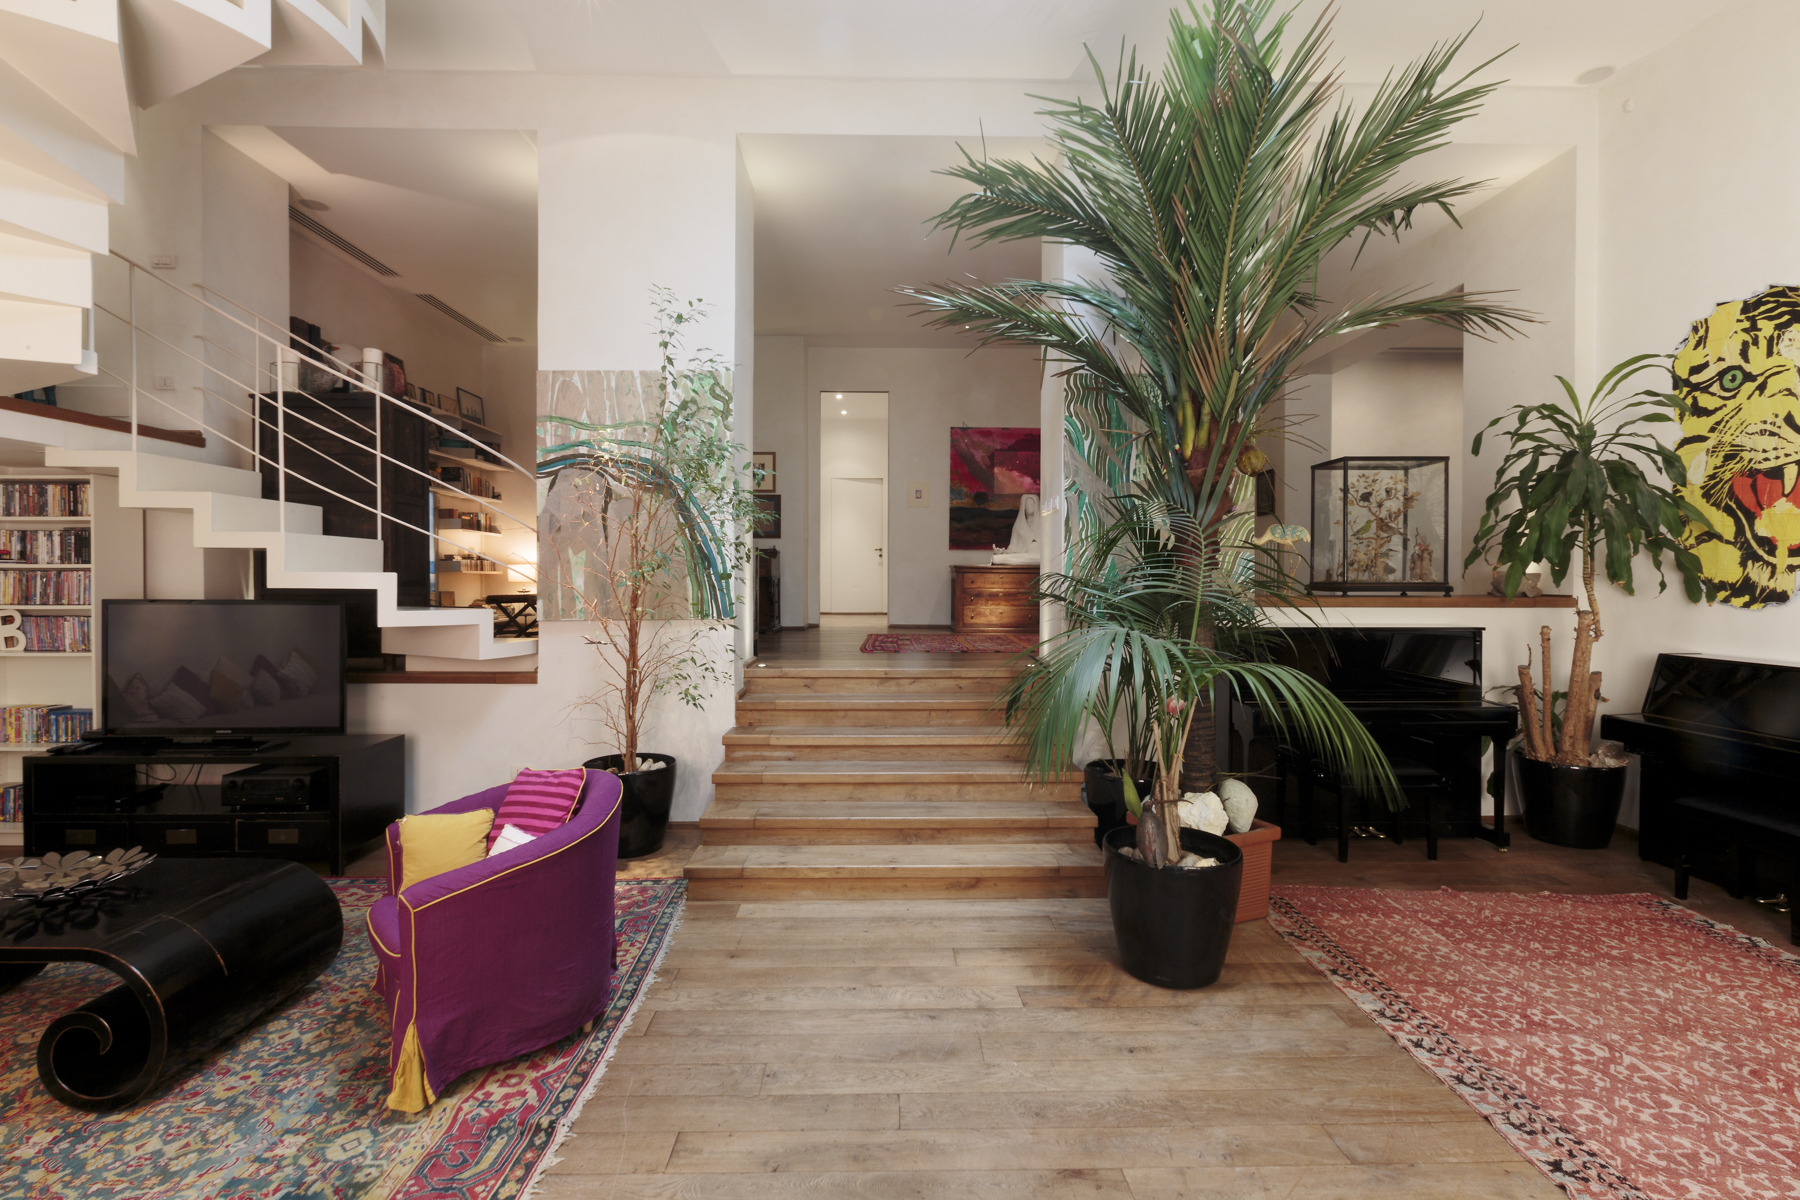 Single Family Home for Sale at Charming apartment with terrace Via Ariberto Milano, Milan 20100 Italy